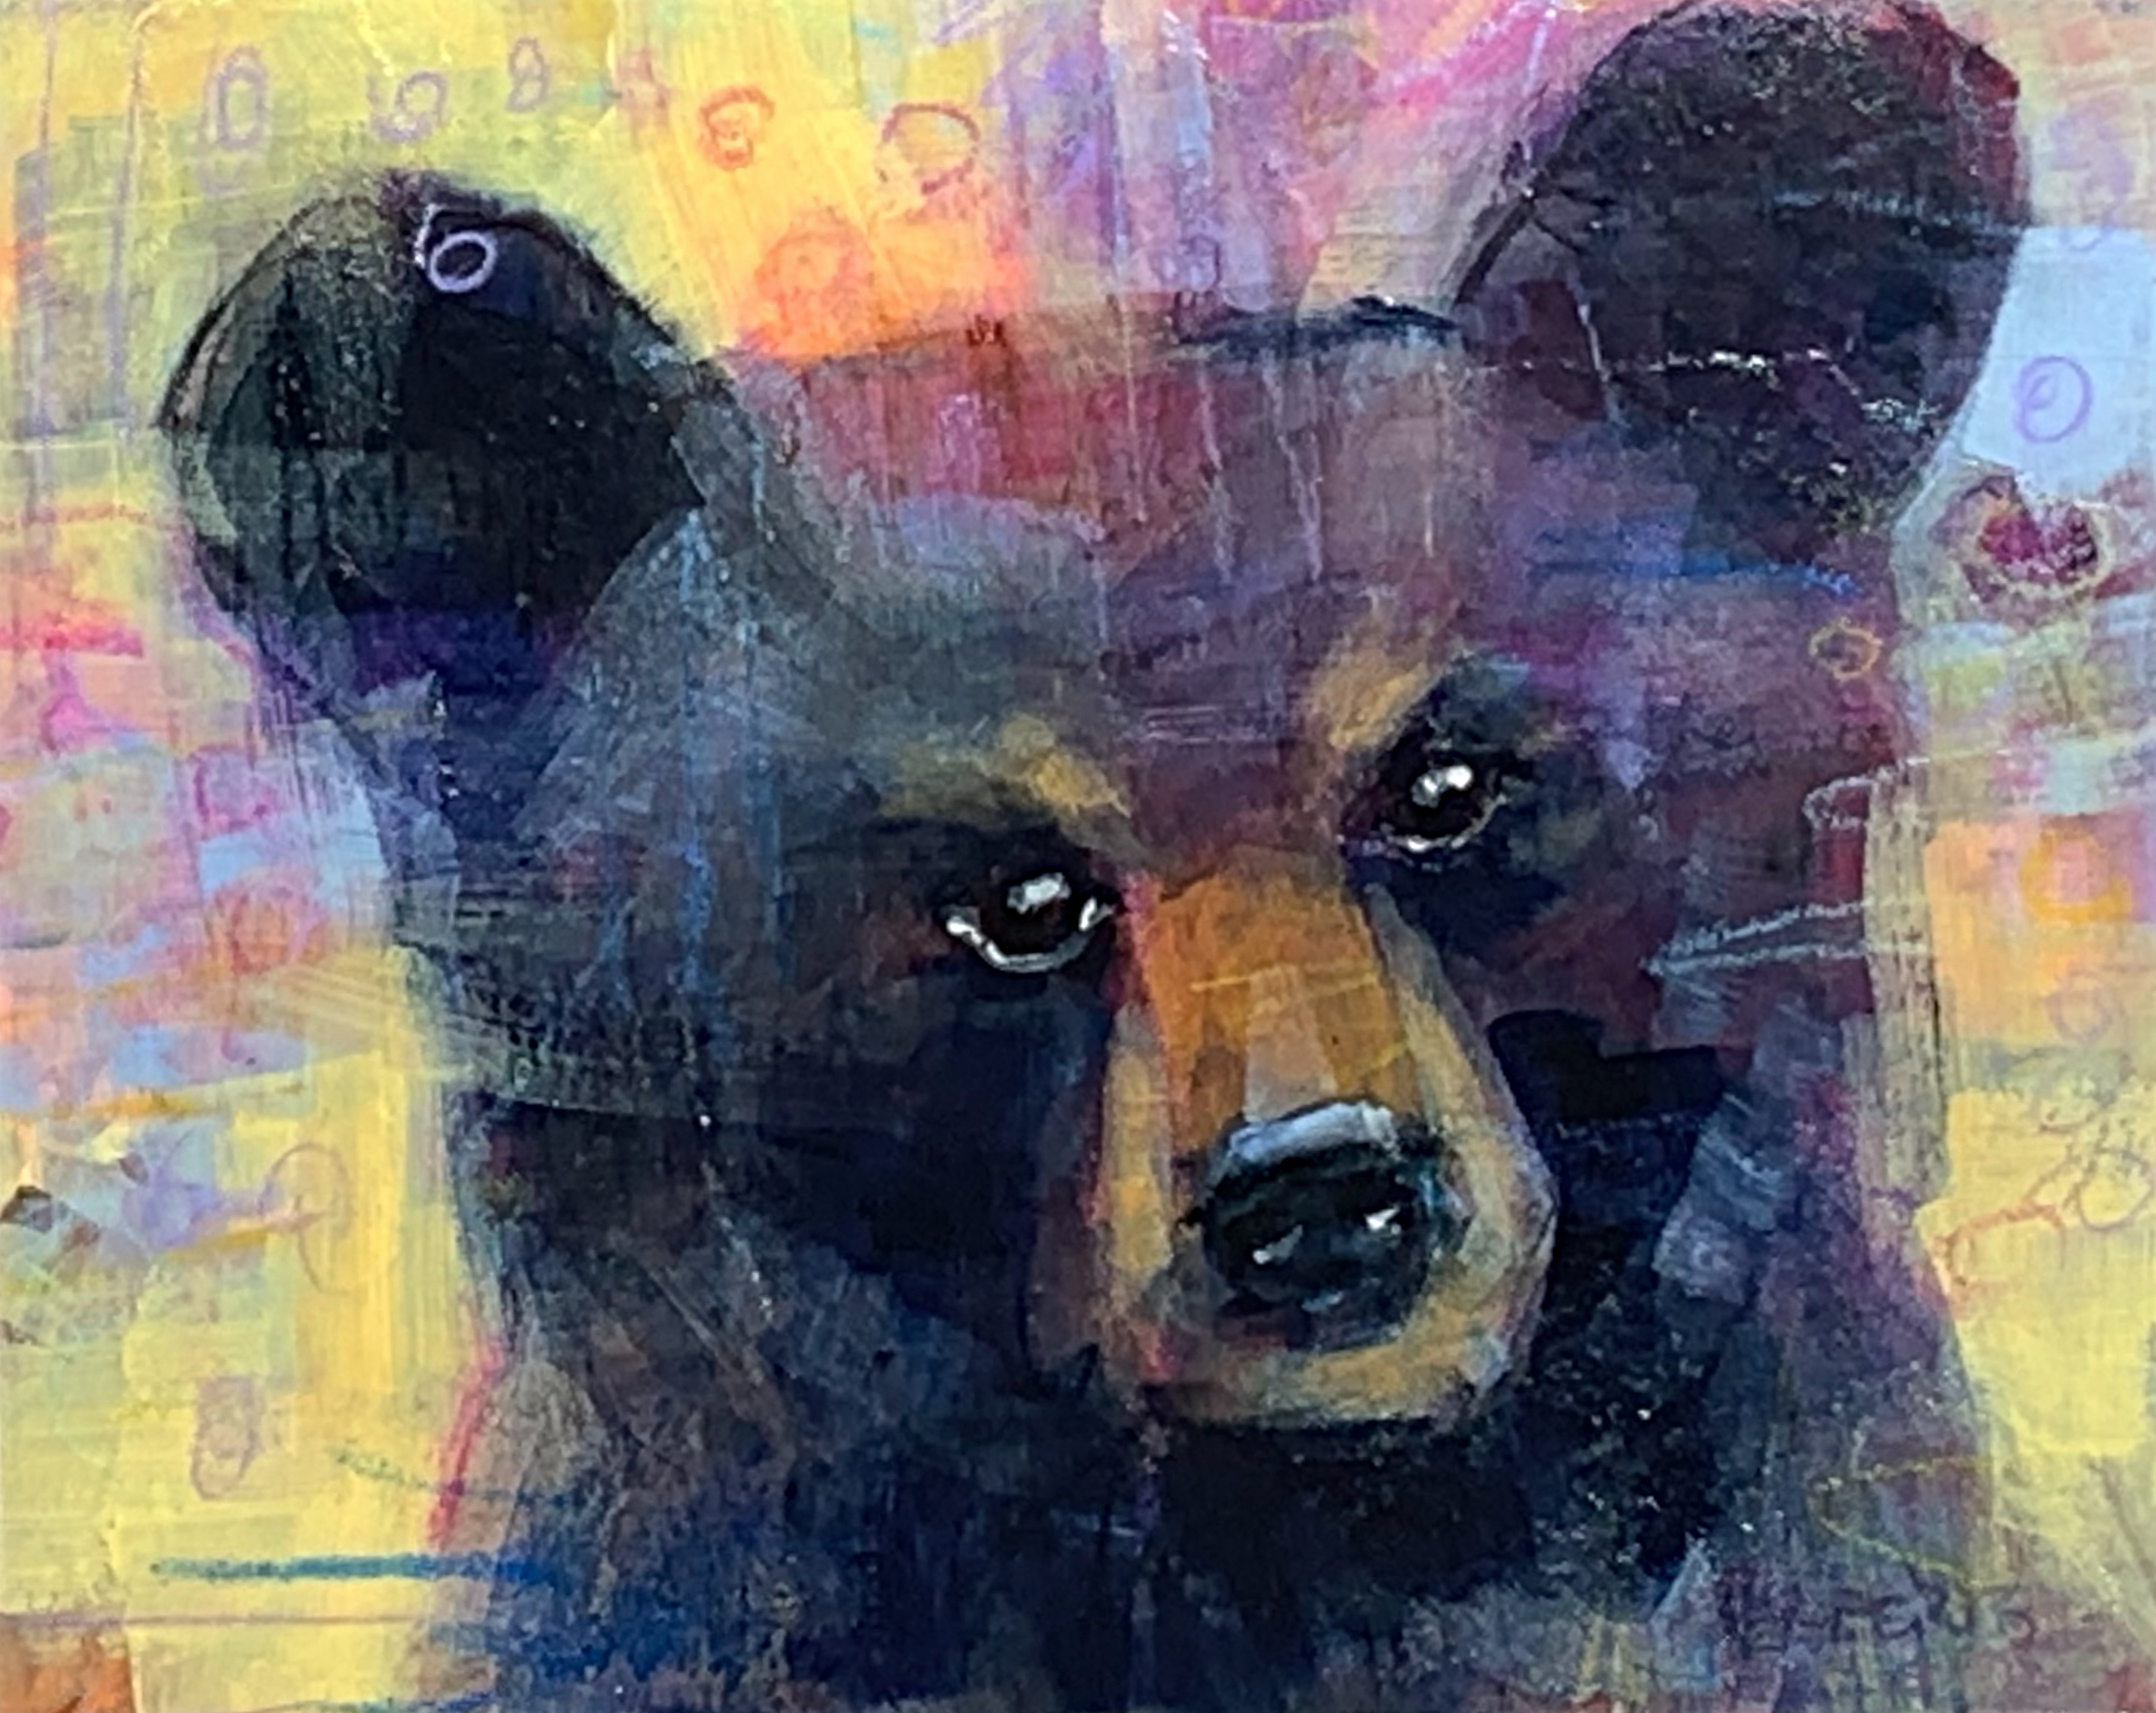 Wonder, mixed media bear painting by Connie Geerts | Effusion Art Gallery + Cast Glass Studio, Invermere BC